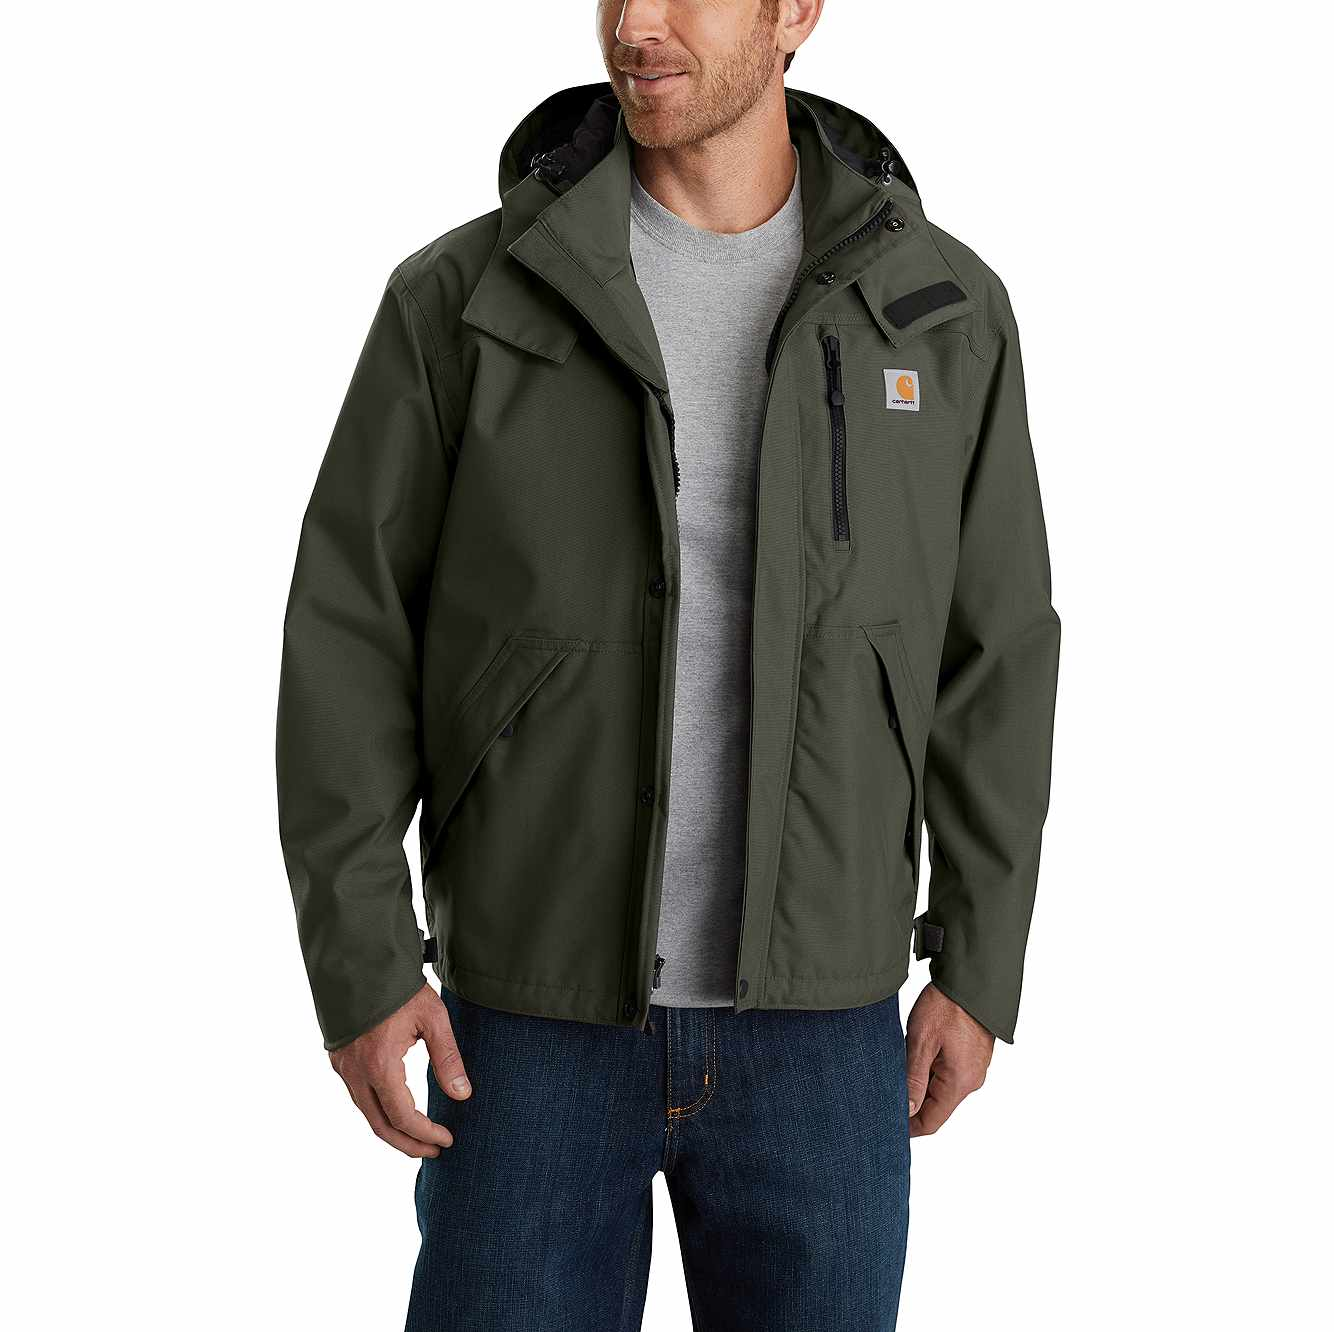 Picture of Shoreline Waterproof Breathable Jacket in Olive